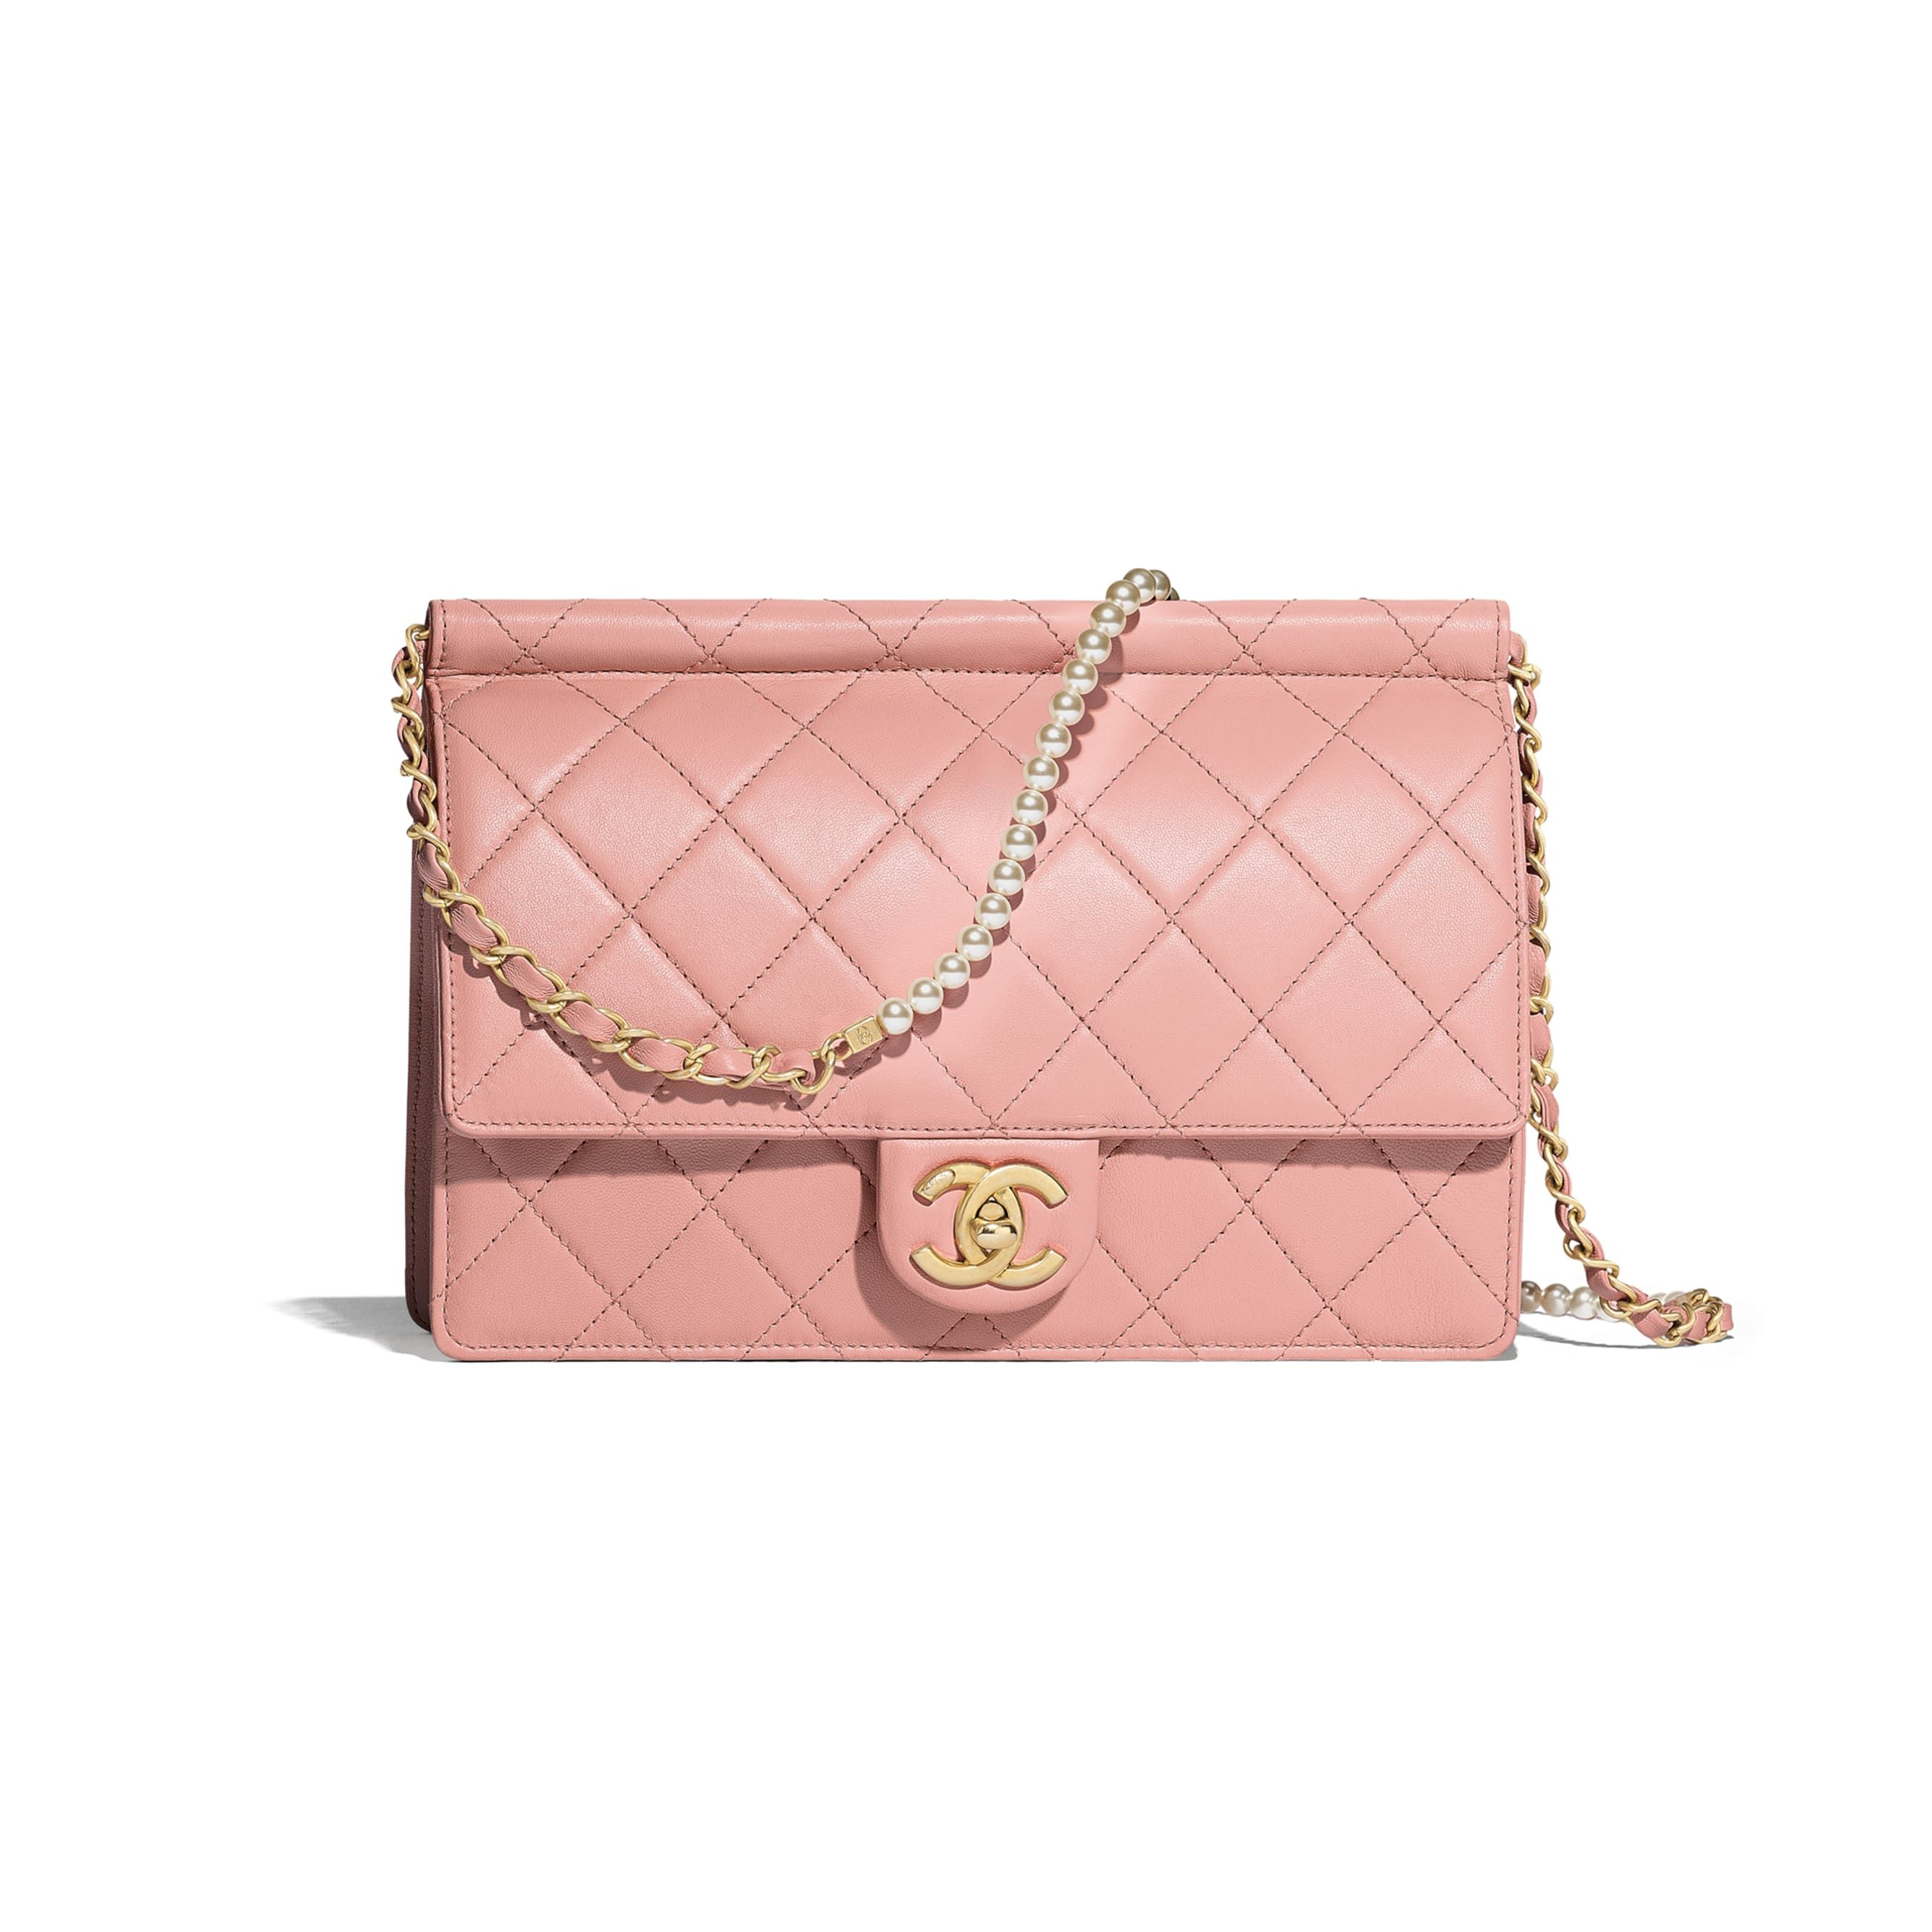 b7cea6ddaf Lambskin, Imitation Pearls & Gold-Tone Metal Pink Flap Bag in 2019 ...